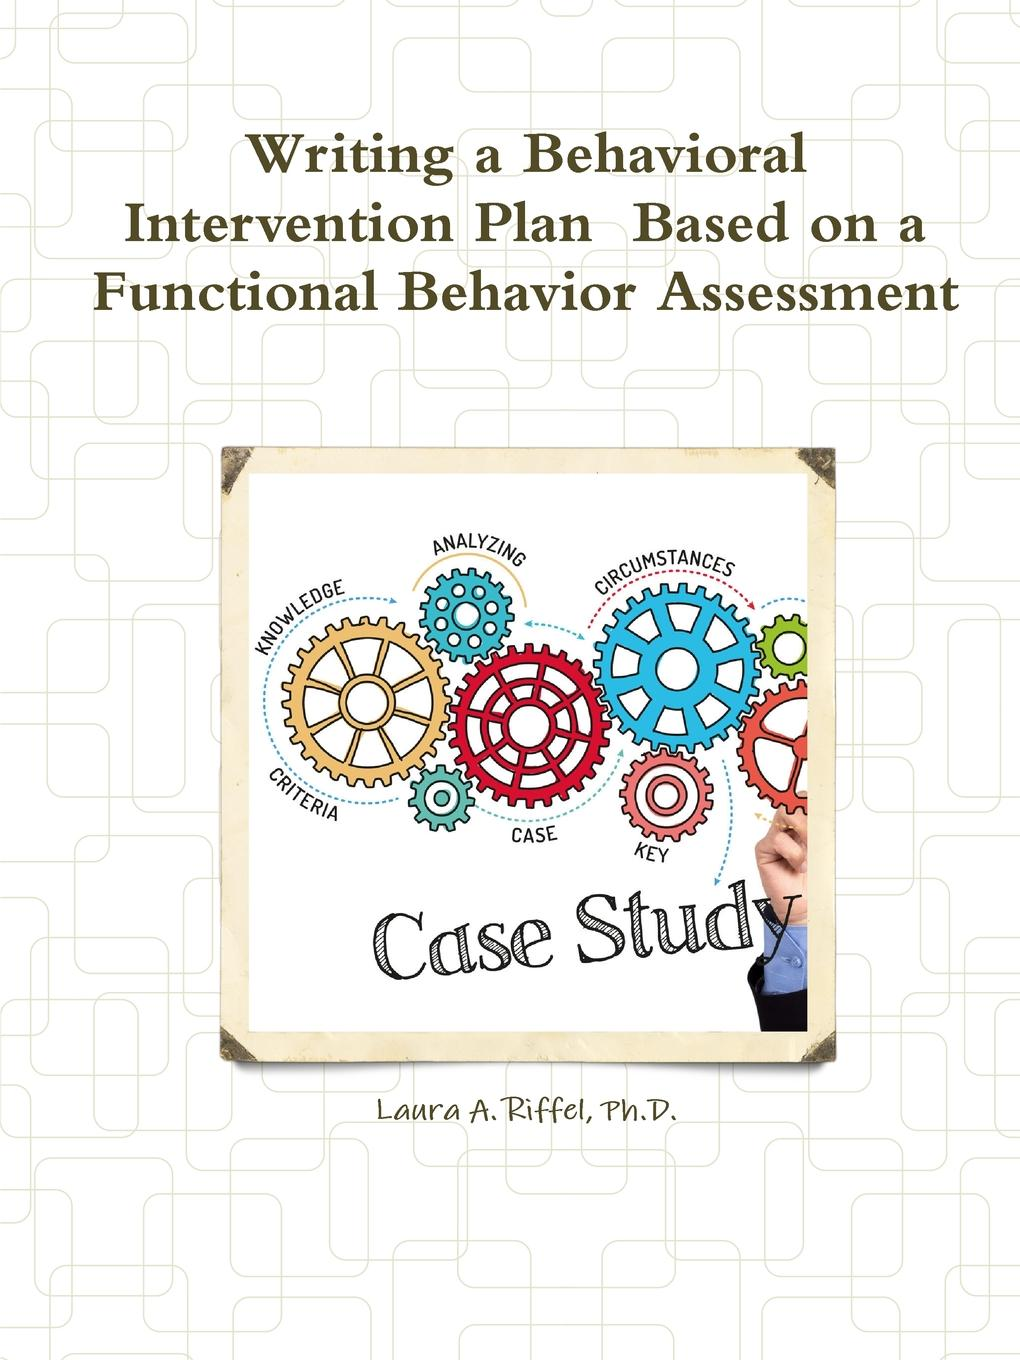 Ph.D. Laura A. Riffel Writing a Behavioral Intervention Plan Based on a Functional Behavior Assessment college students and risk sexual behavior